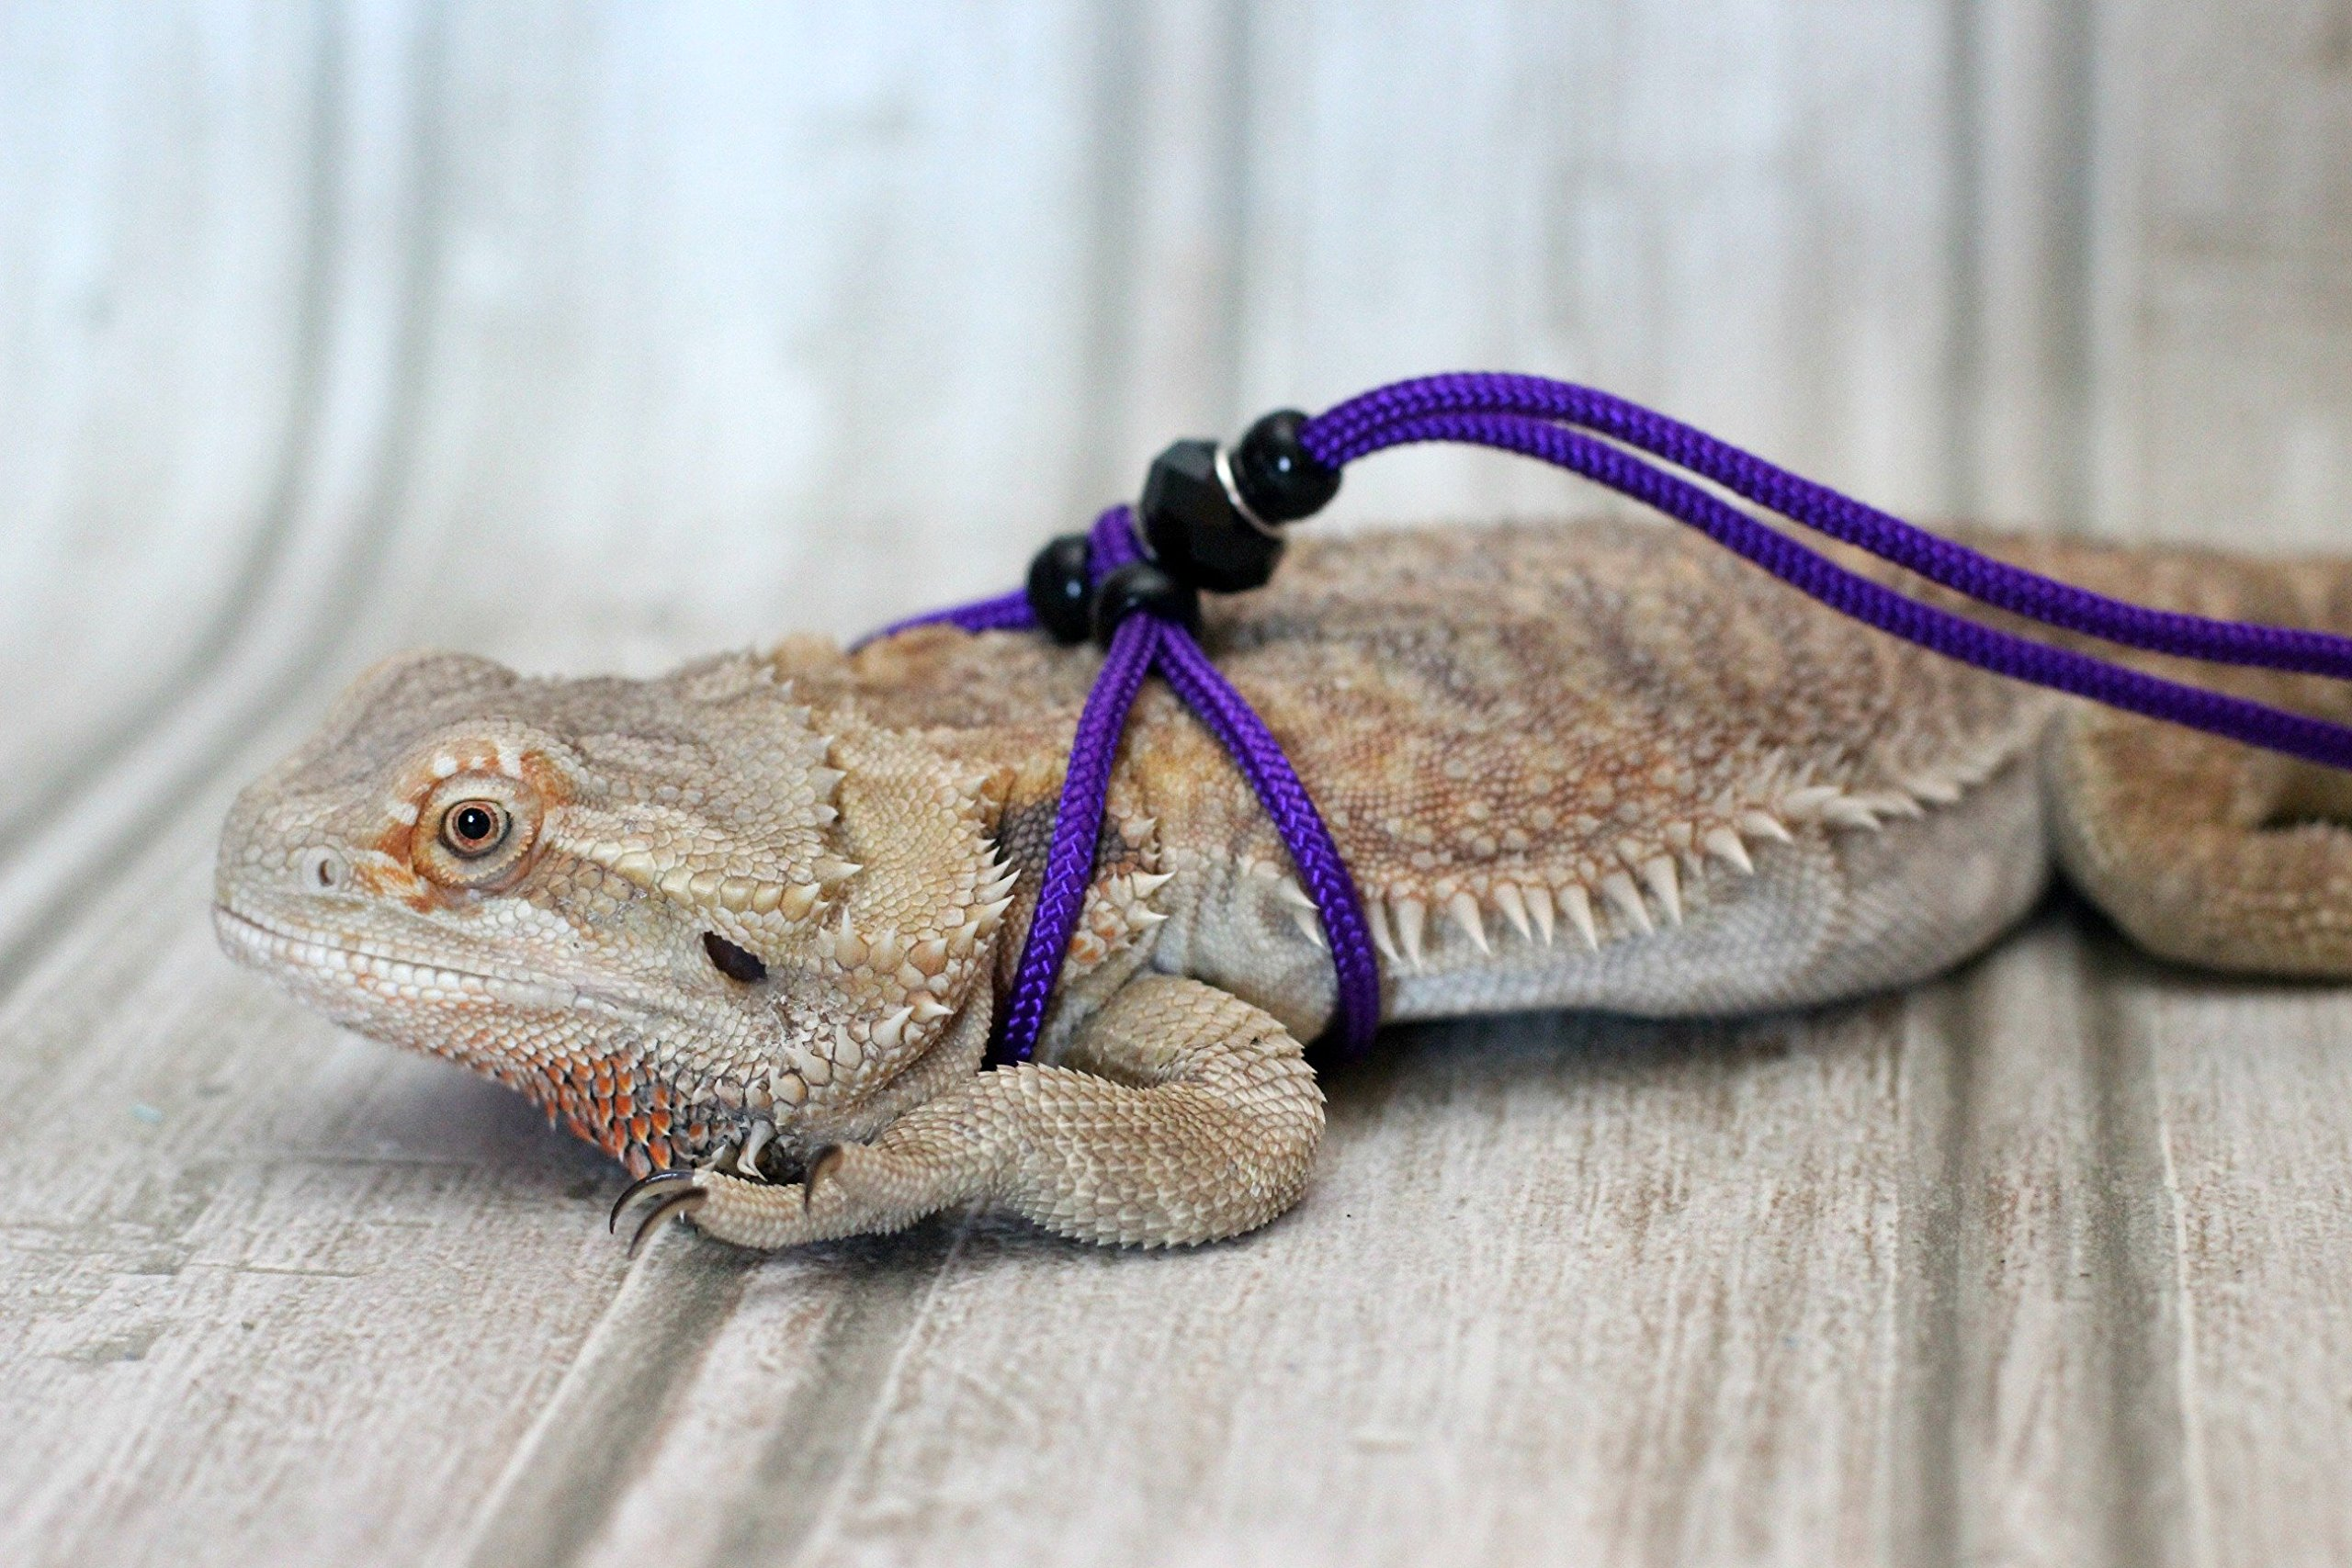 Adjustable Reptile Leash™ Harness Great for Reptiles or Small Pets 100% Adjustable One Size Fits Most (6 Feet, Purple)